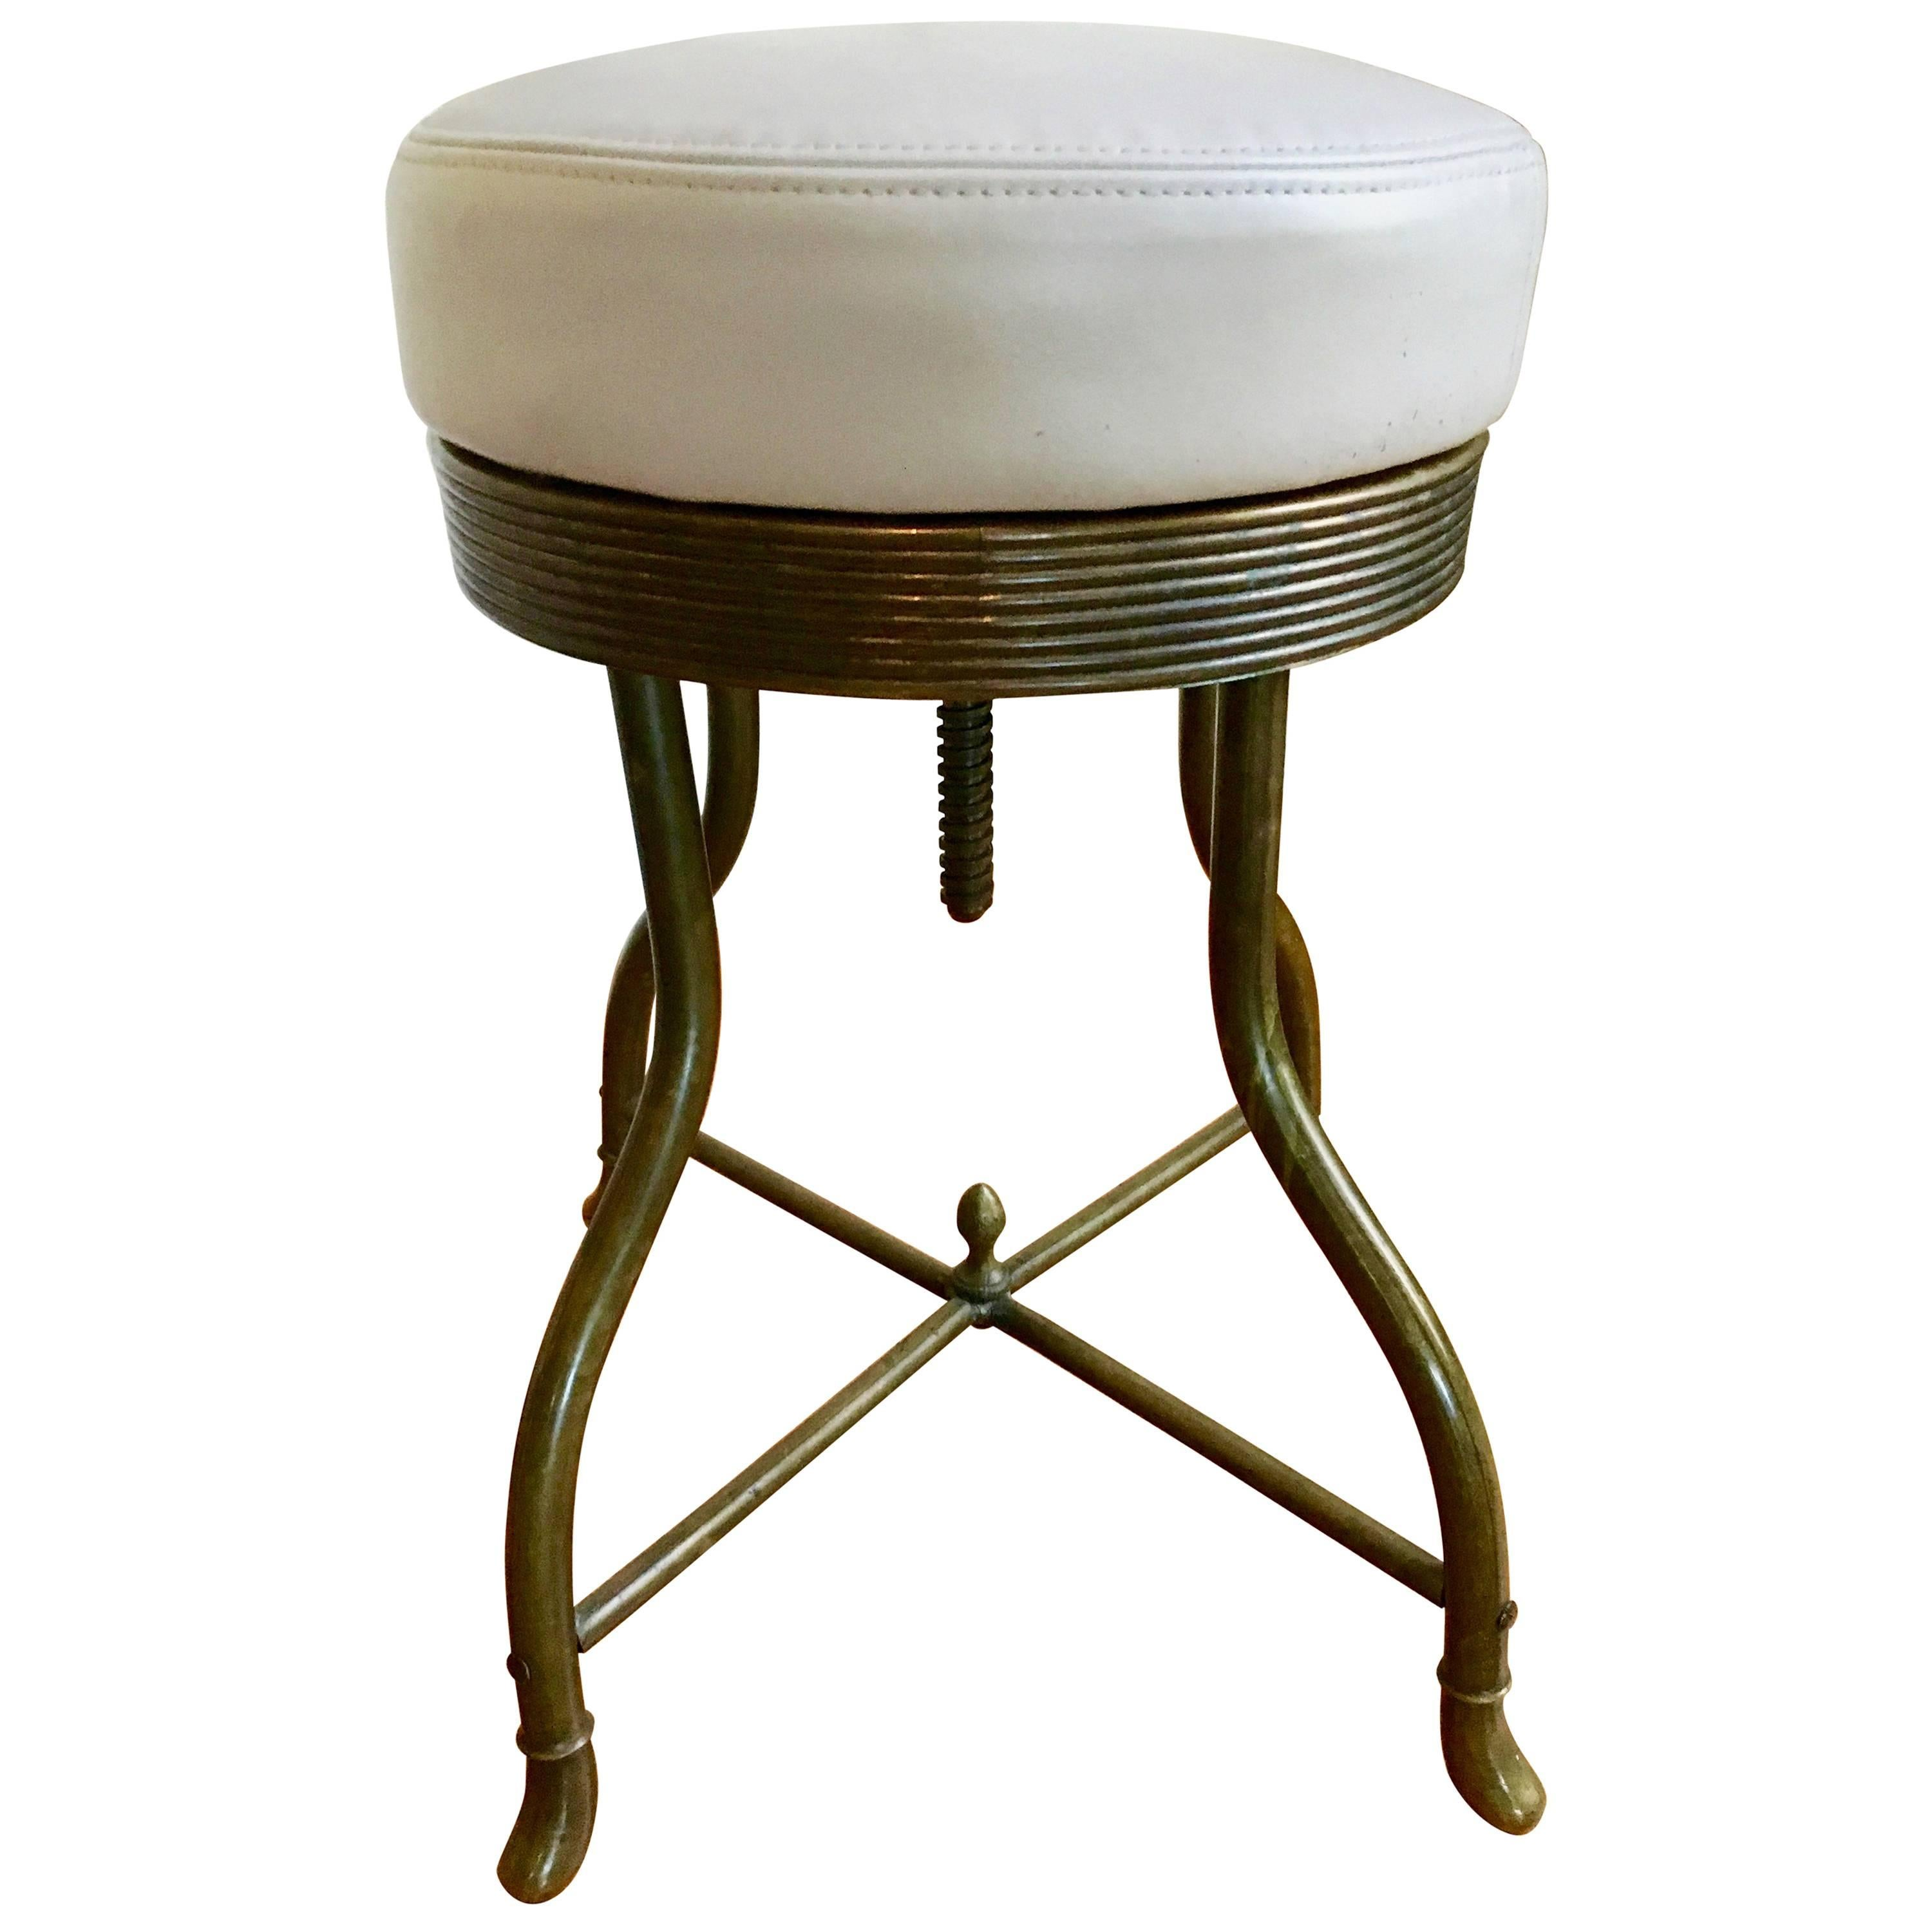 French Brass Vanity Work Stool with Leather Seat  sc 1 st  1stDibs & Acrylic Round Vanity Stool White Faux Leather at 1stdibs islam-shia.org